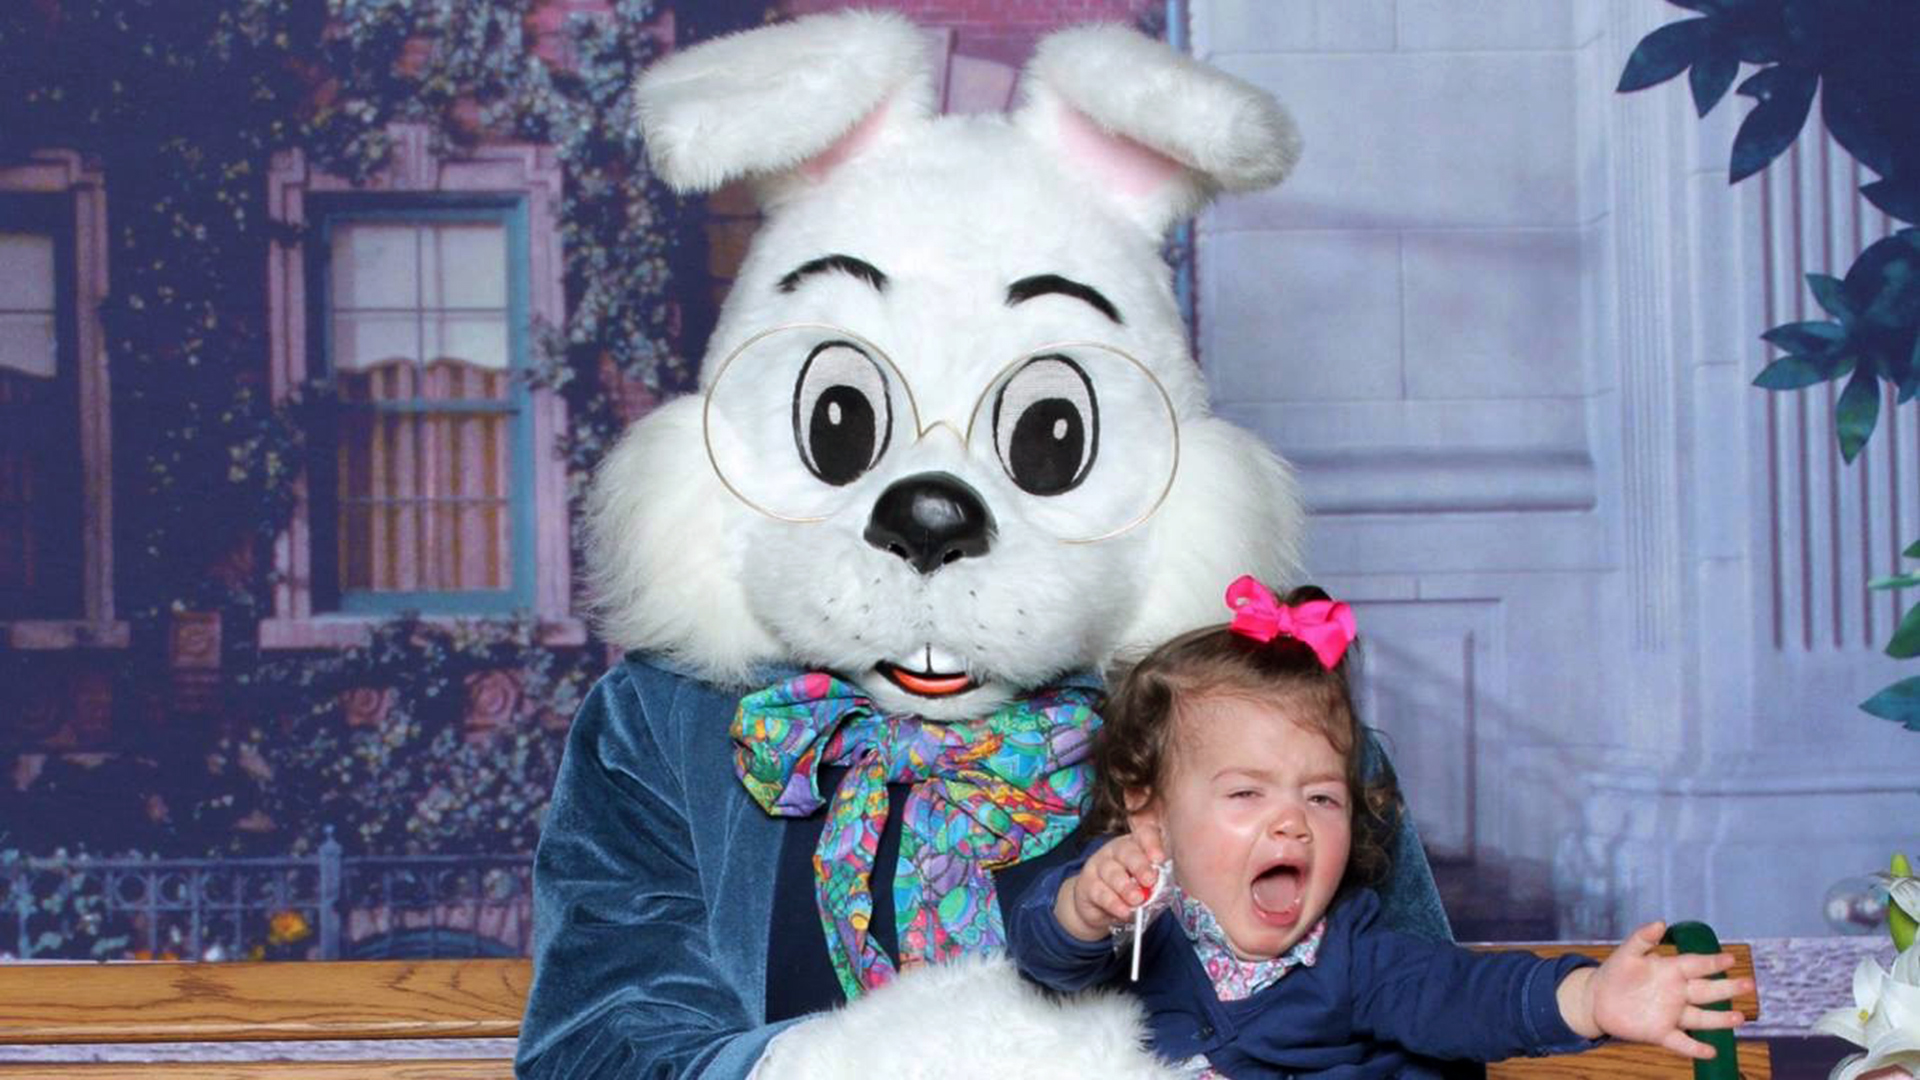 Kids terrified of easter Bunny